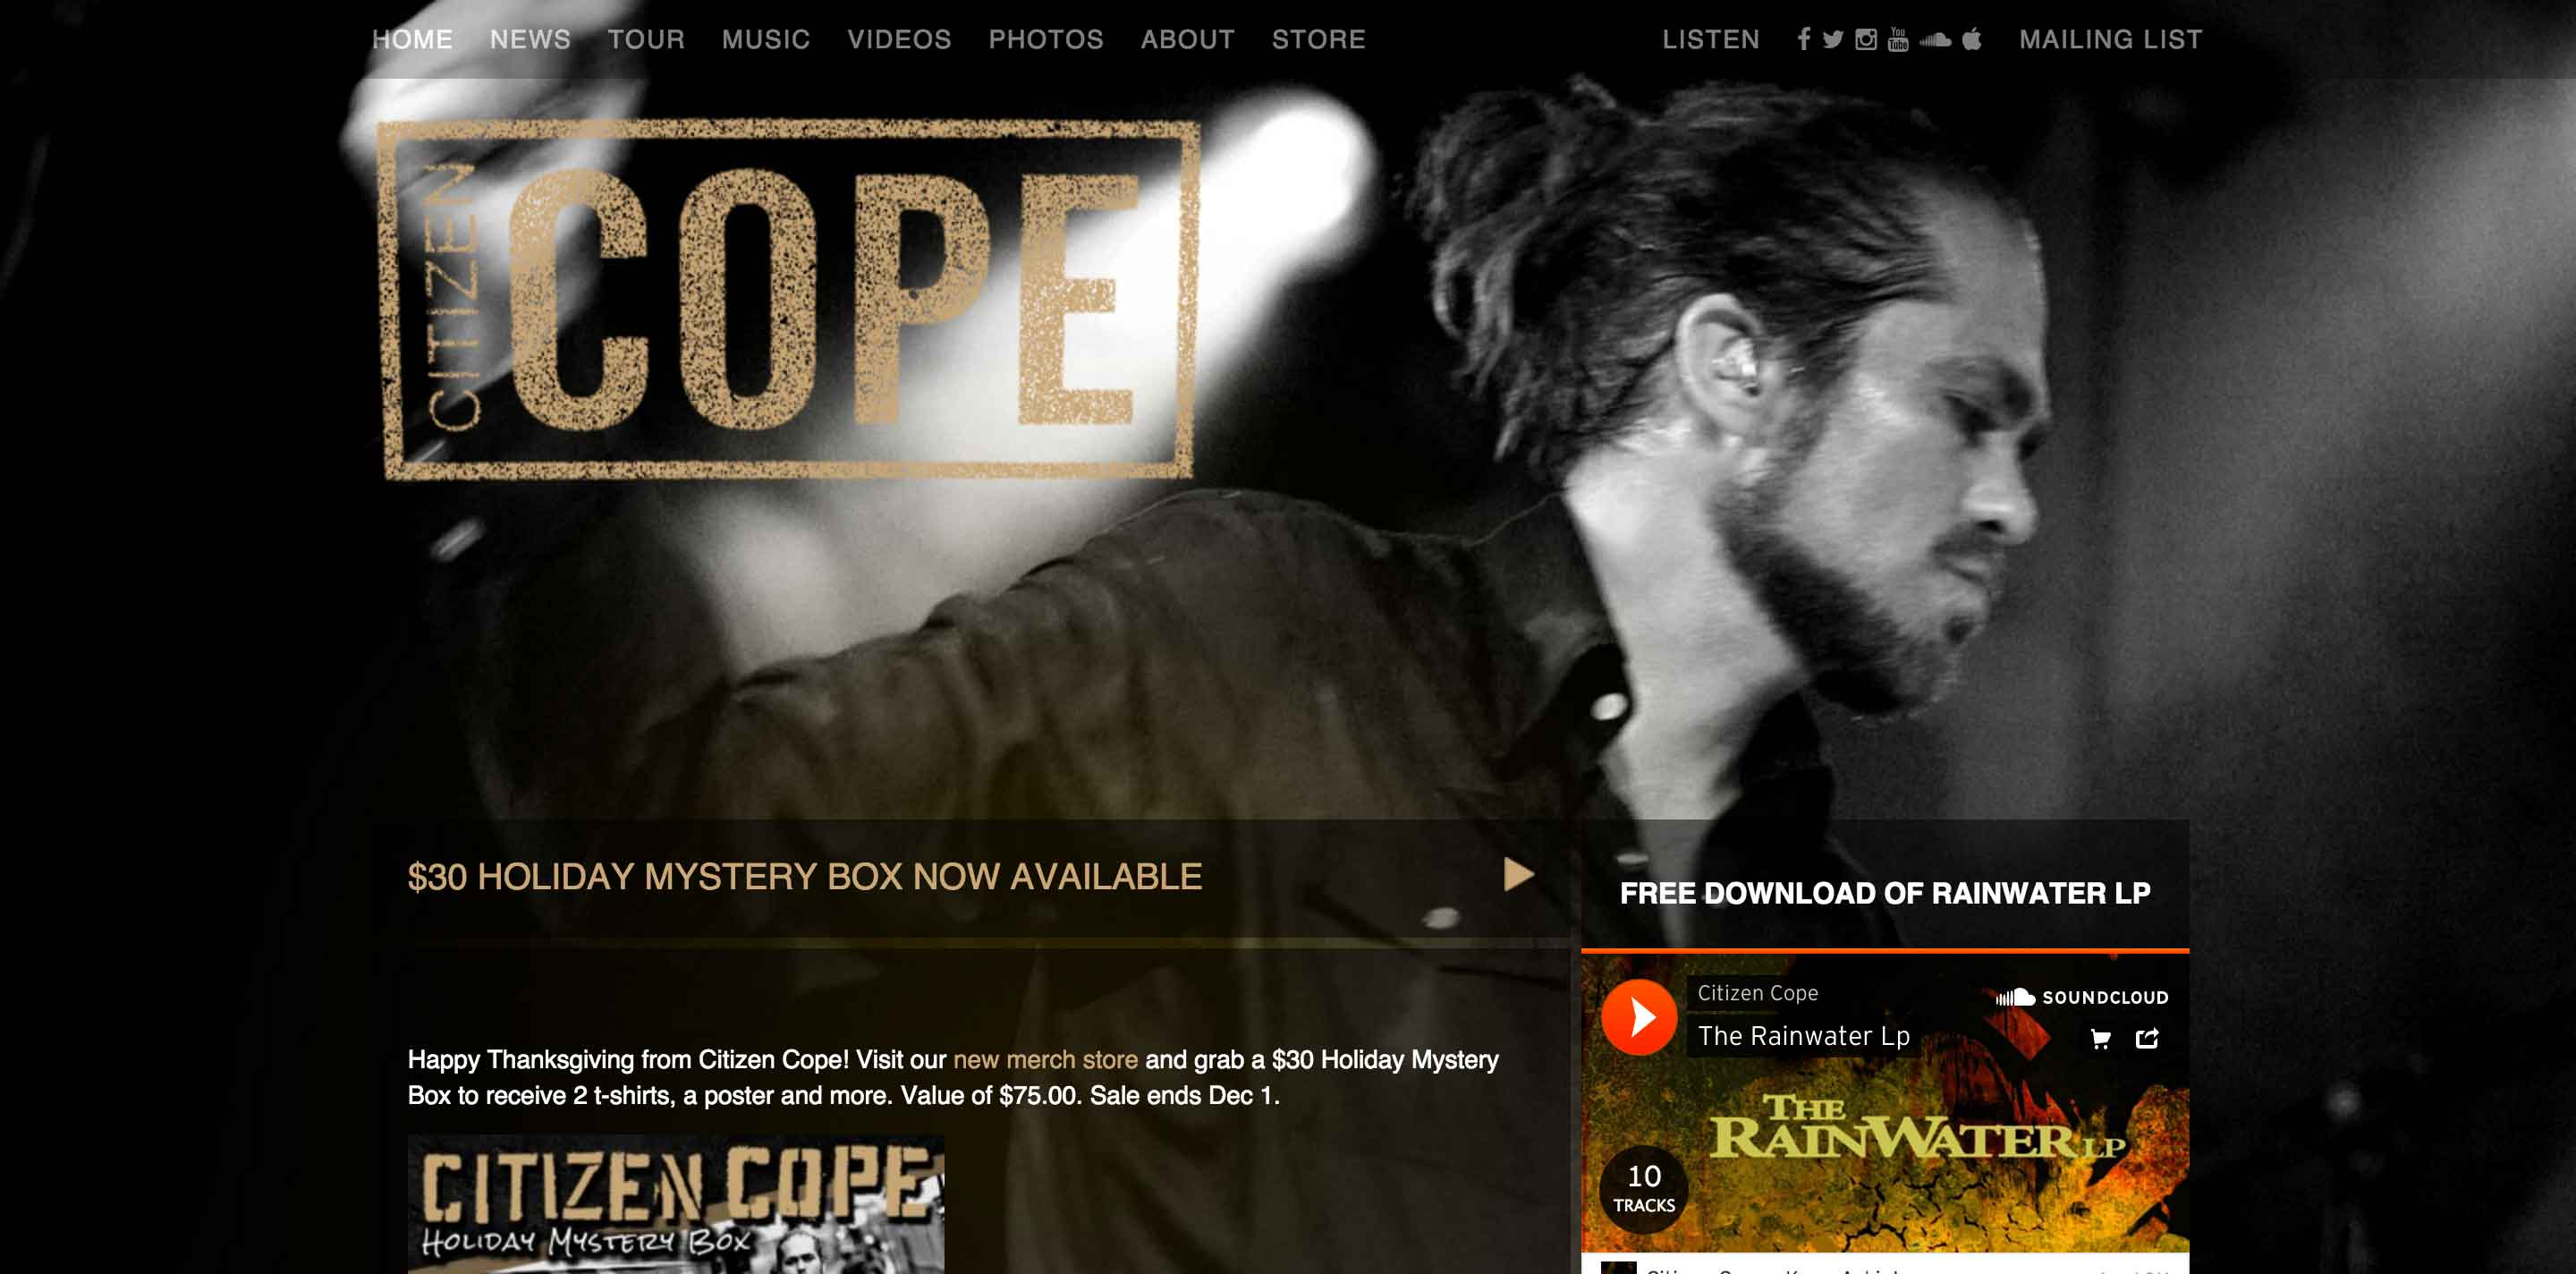 citizen-cope